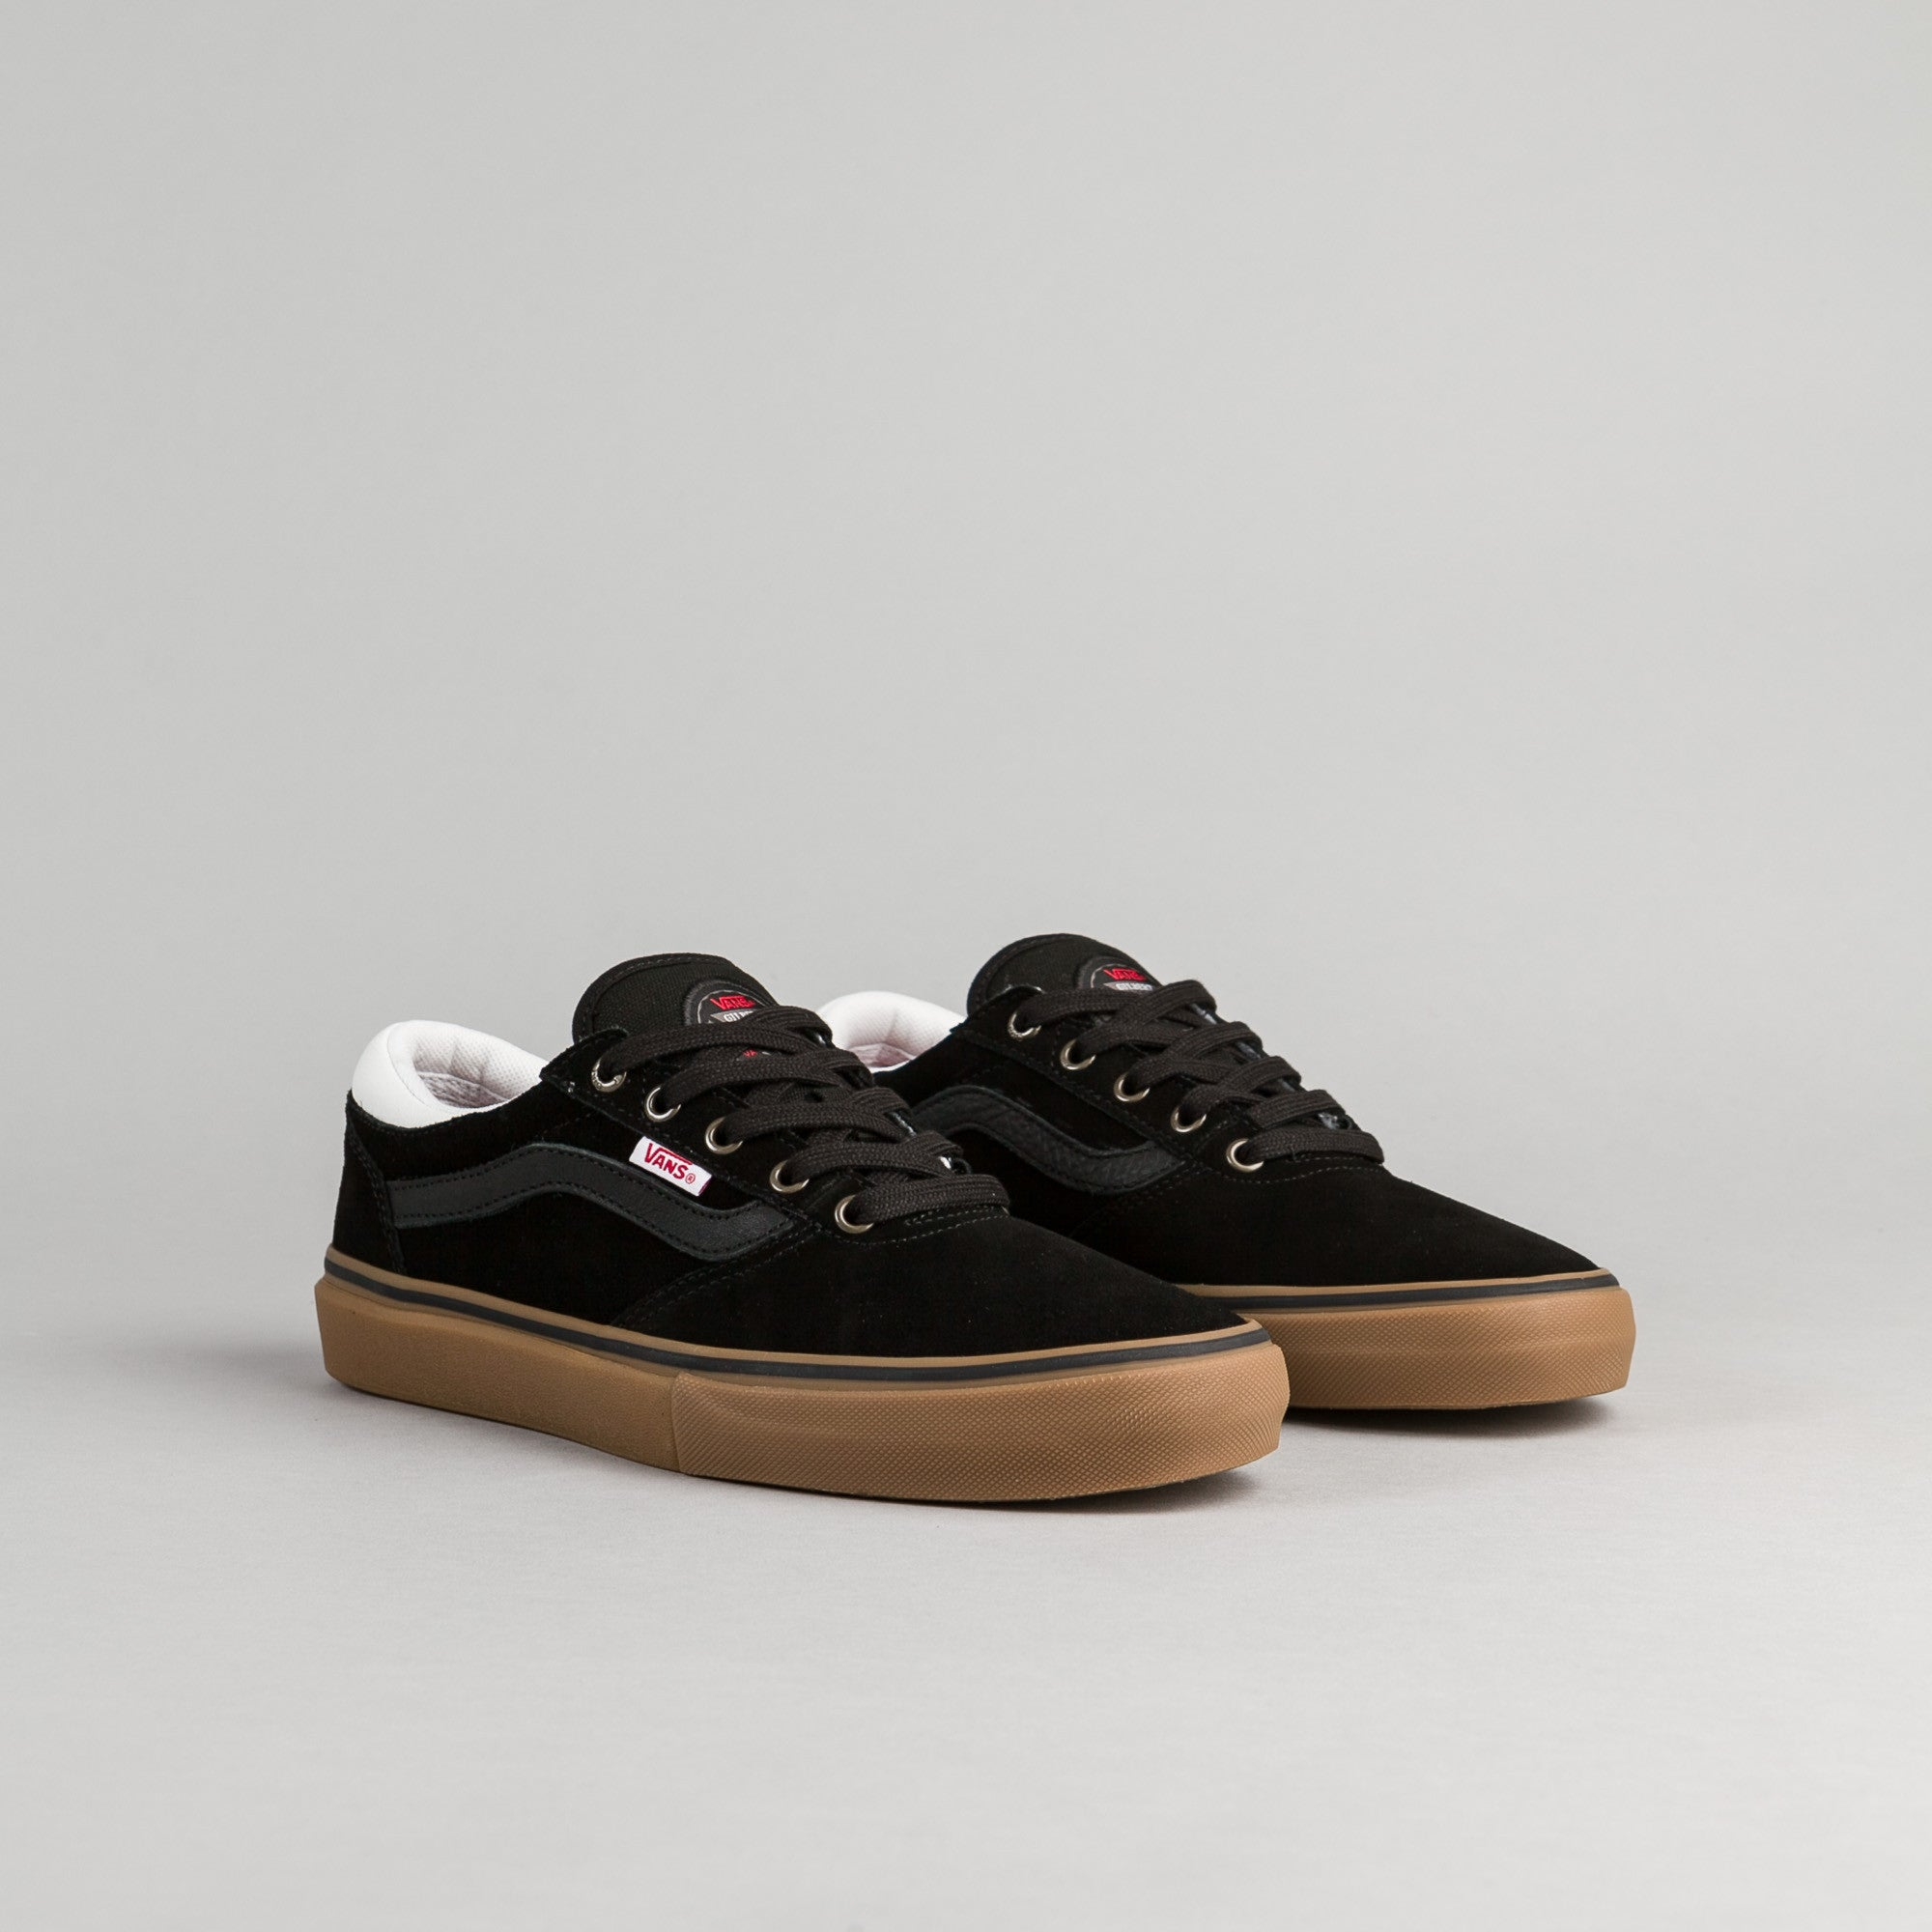 f89c6e1917 ... Vans Gilbert Crockett Pro Shoes - Black   White   Gum ...